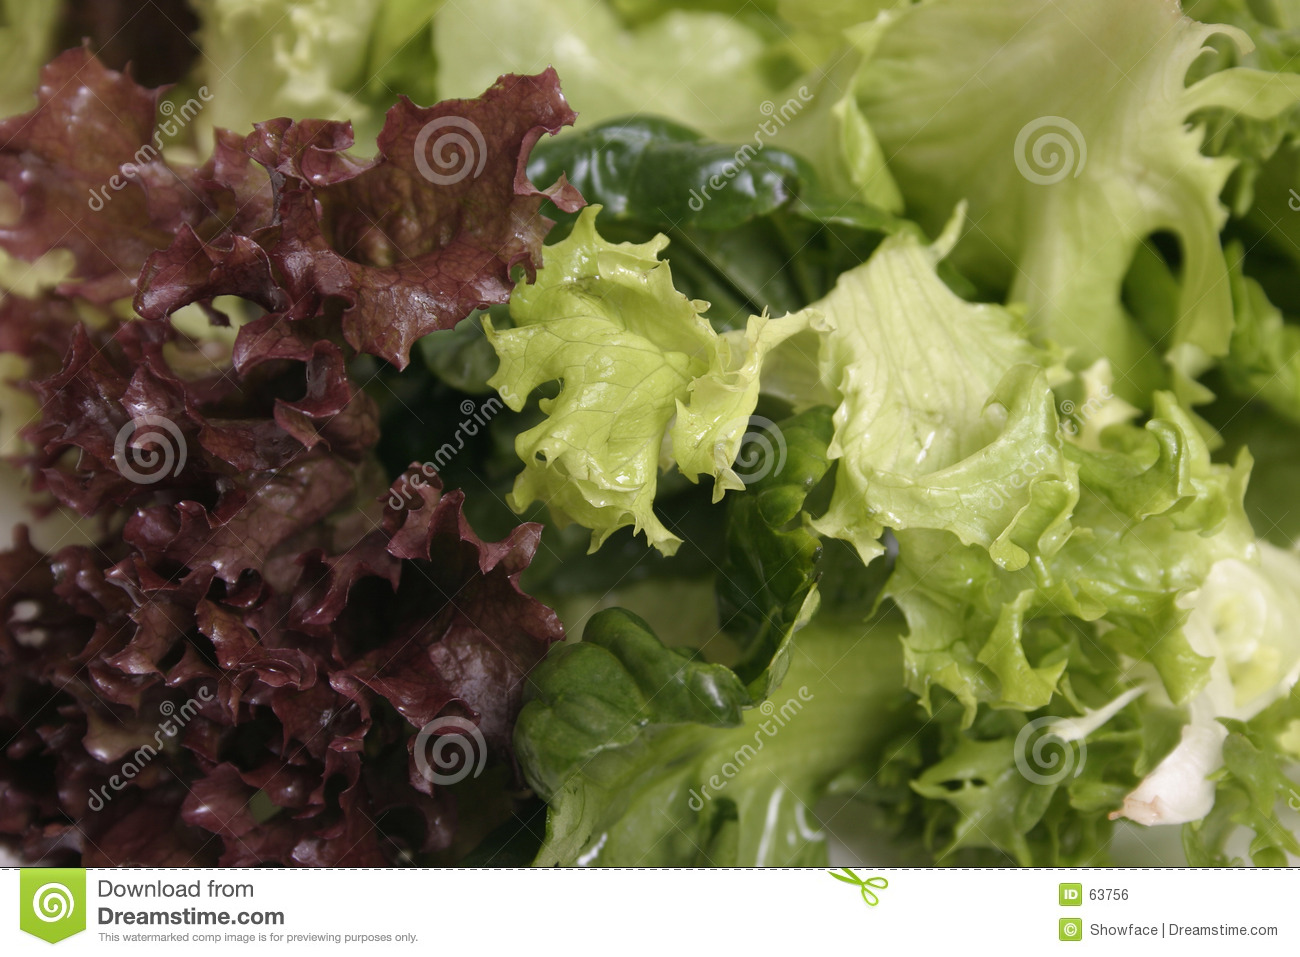 Mixed lettuce close up